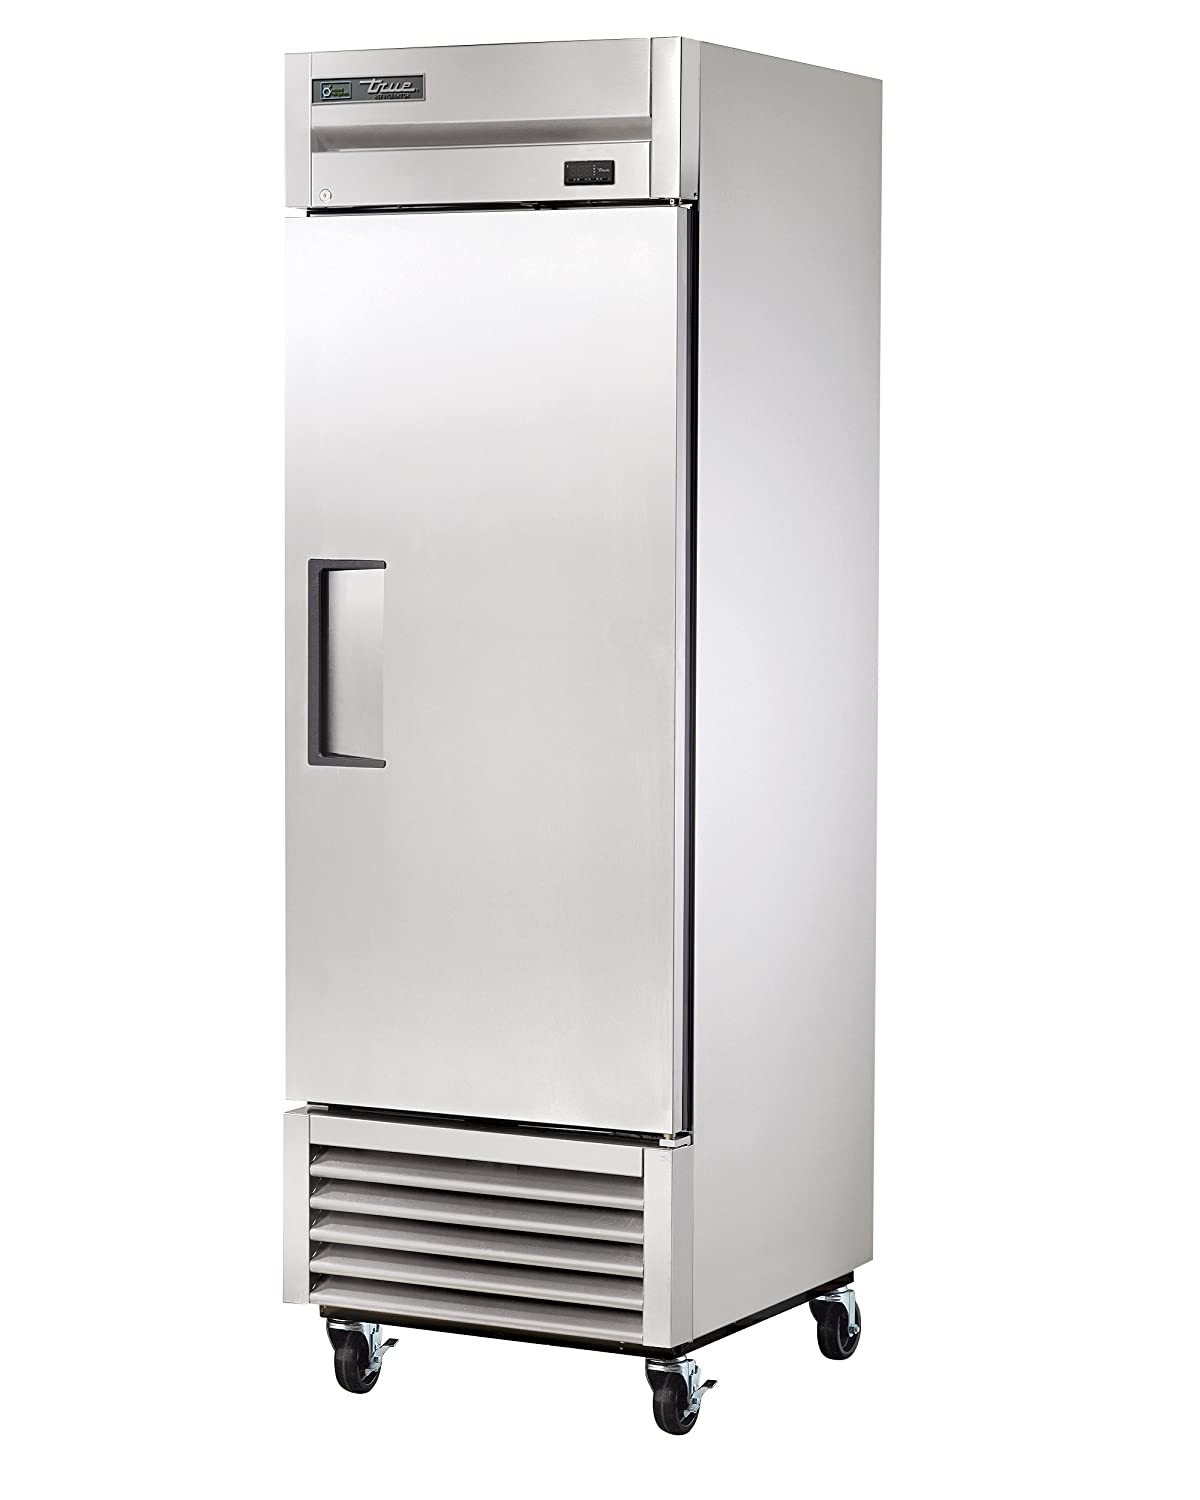 "True T-23F-HC Reach-in Solid Swing Door Freezer with Hydrocarbon Refrigerant, Holds -10 Degree F, 78.375"" Height, 29.5"" Width, 27"" Length"